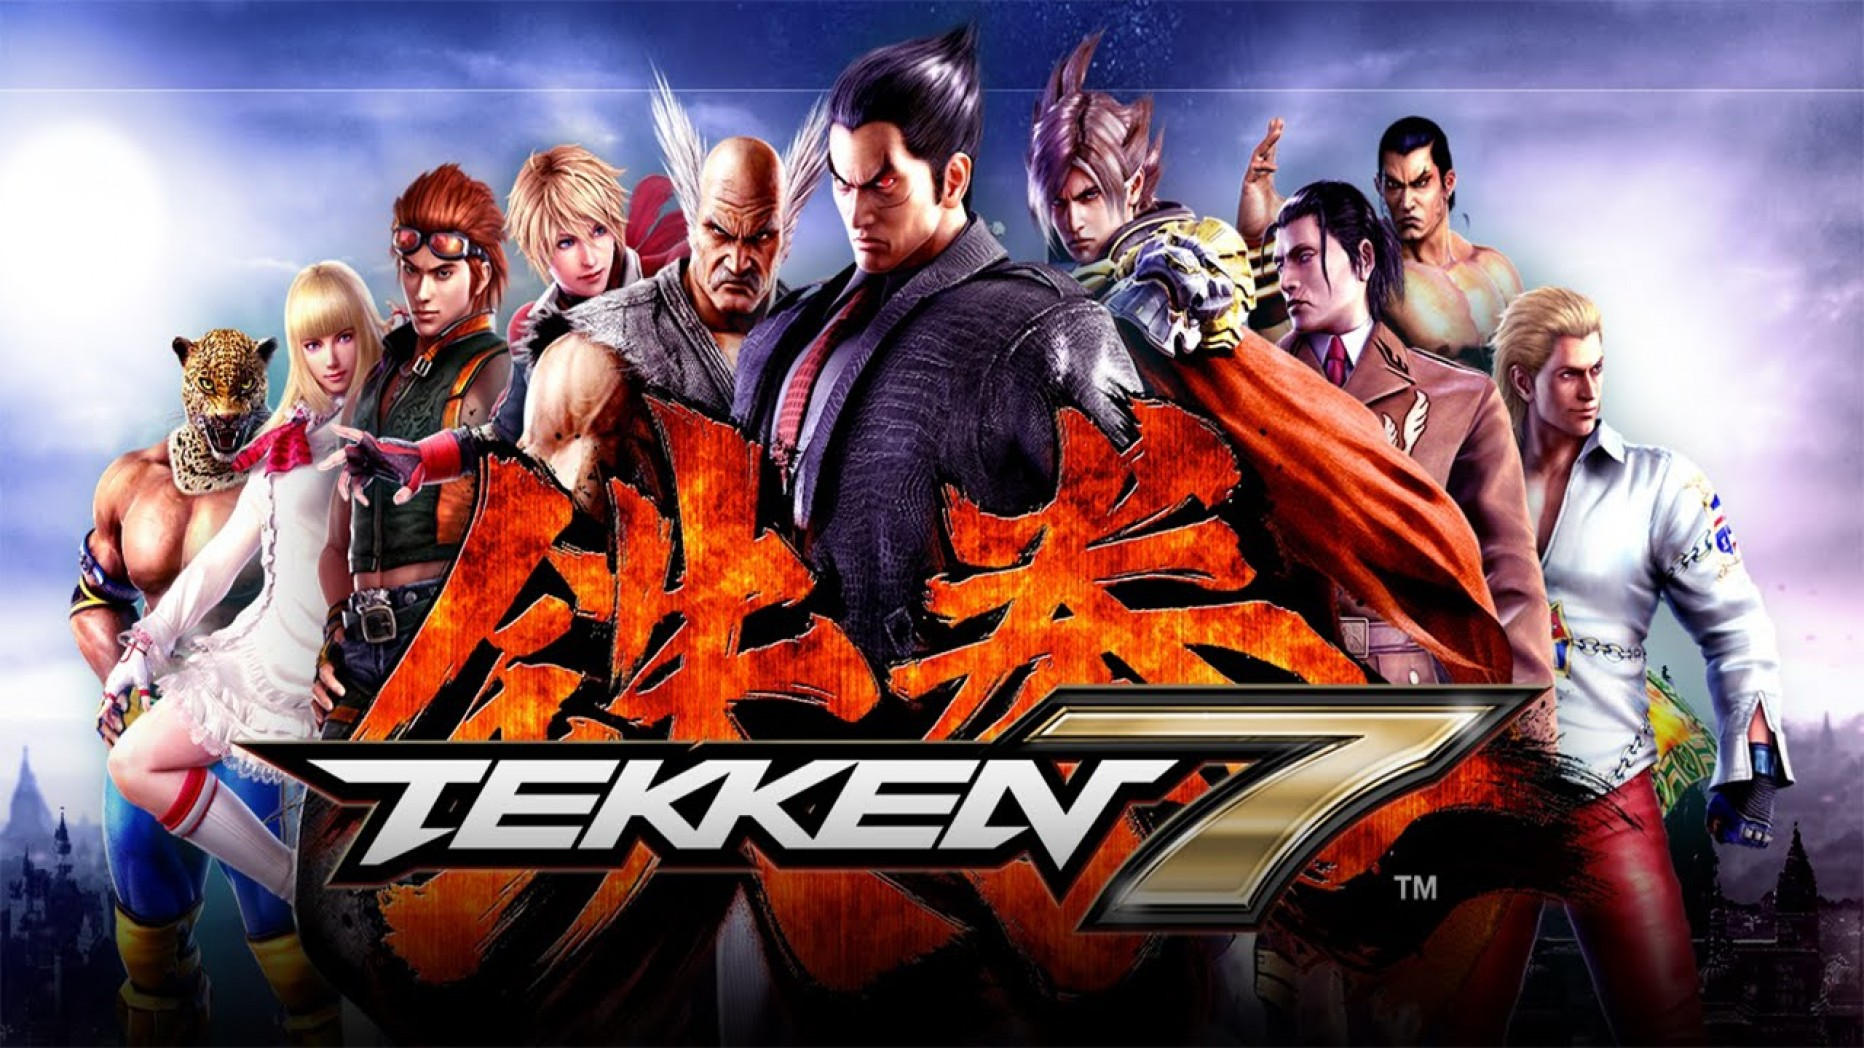 TEKKENTM 7 TO FEATURE TWO NEW EXCLUSIVE GUESTS CHARACTERS FROM OTHER